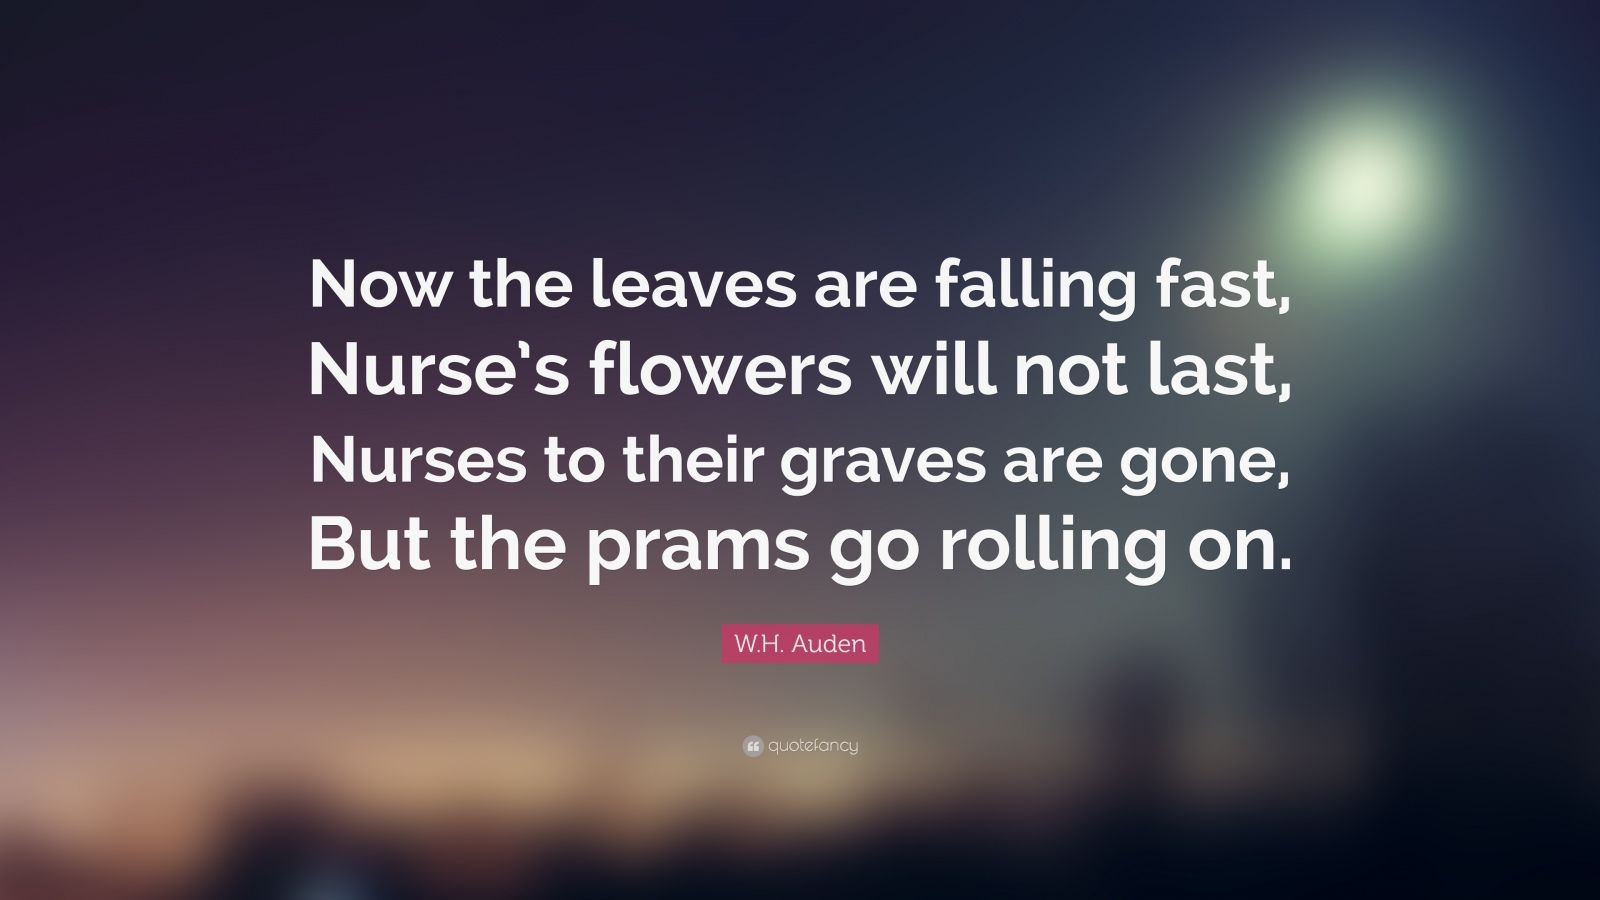 """W.H. Auden Quote: """"Now the leaves are falling fast, Nurse's flowers will not last, Nurses to their graves are gone, But the prams go rolling on."""""""